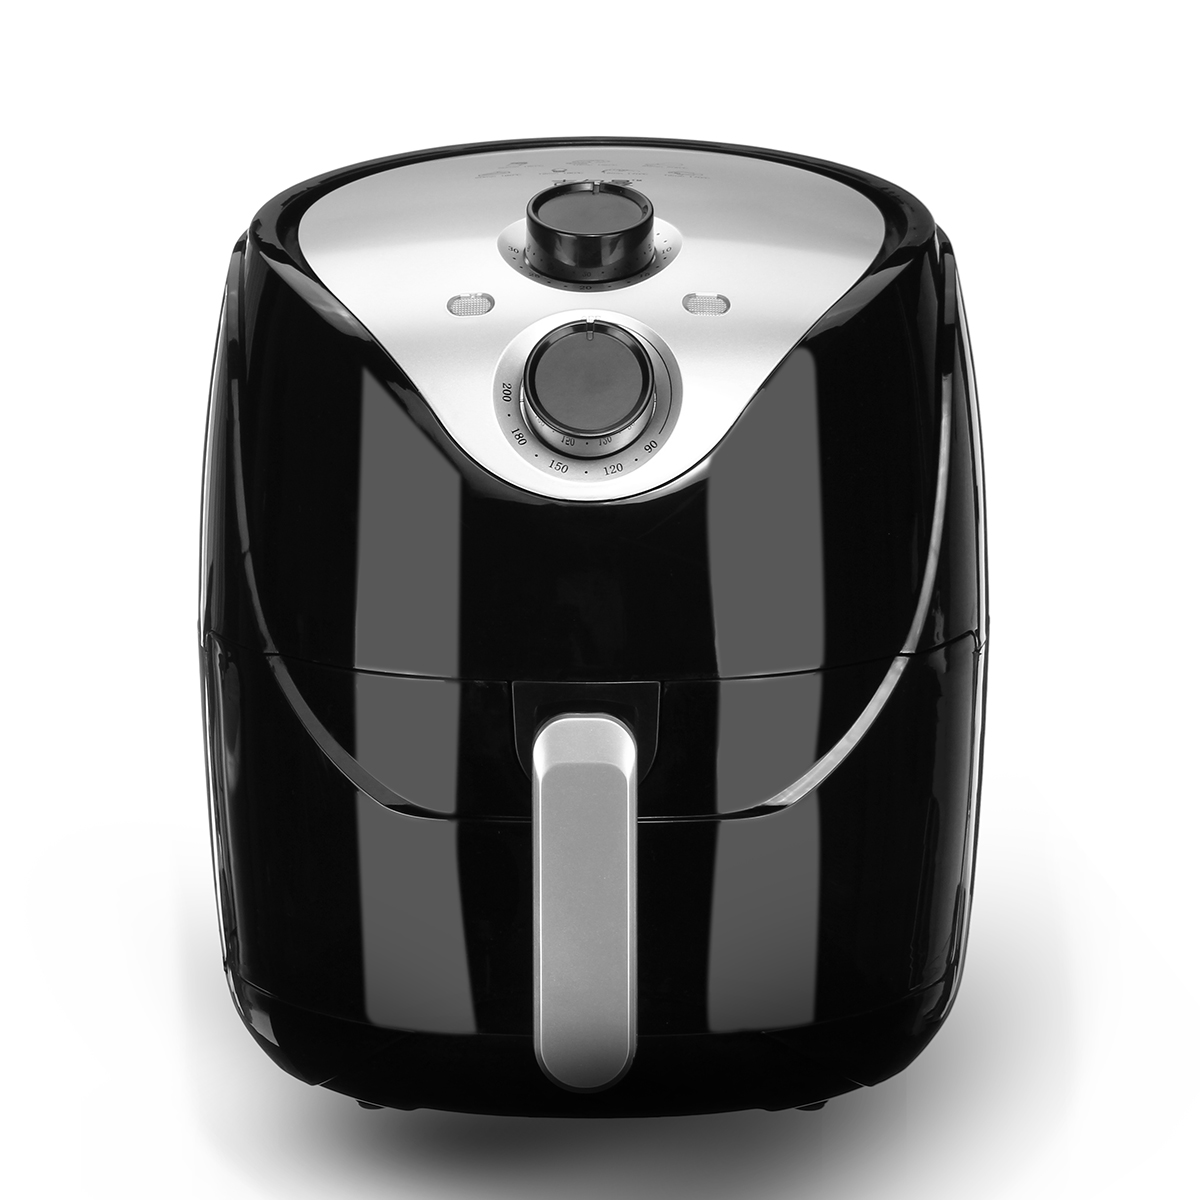 Multi-function Air Fryer Electric Deep Fryer 1500W 220V 5.5L 360° High-speed Hot Air Circulation Cooker Oven Low Fat Health Pan